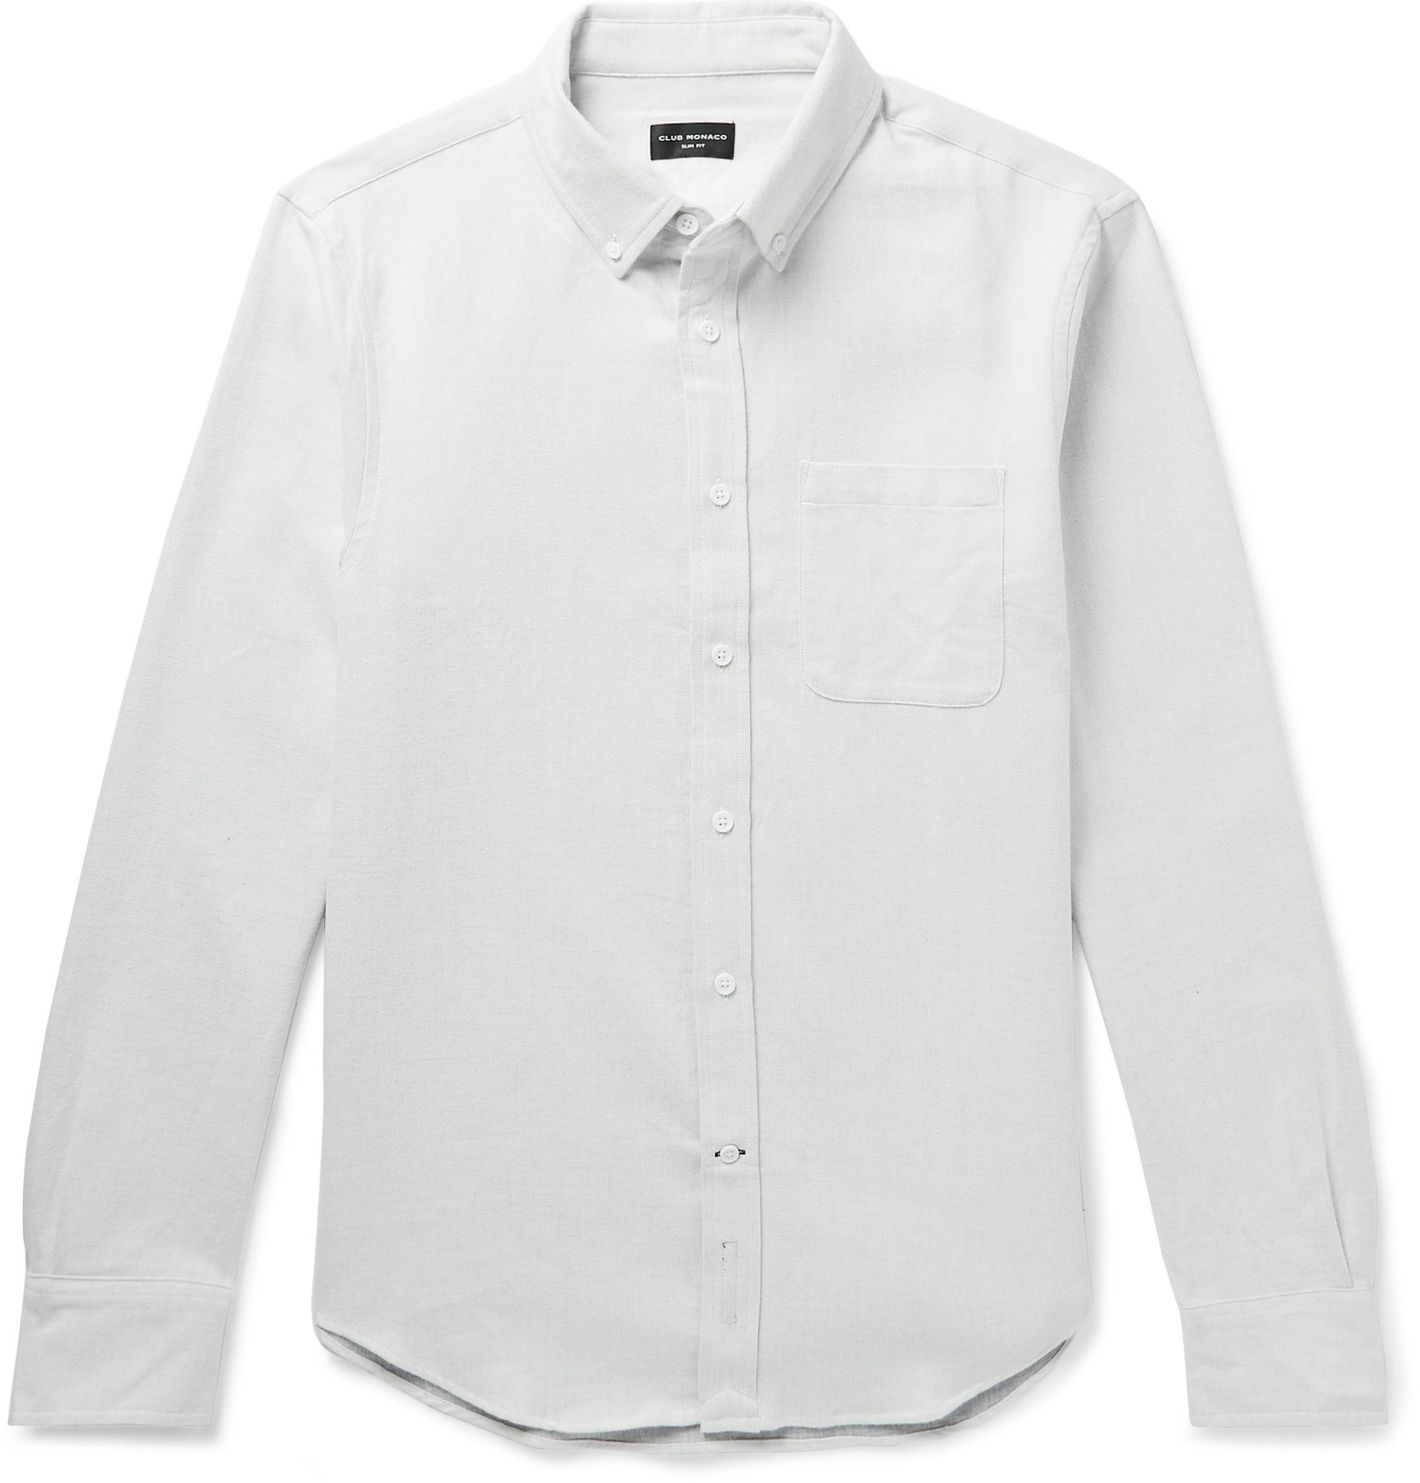 2d4c5ce8acc Club Monaco Slim-Fit Button-Down Collar Double-Faced Cotton Shirt